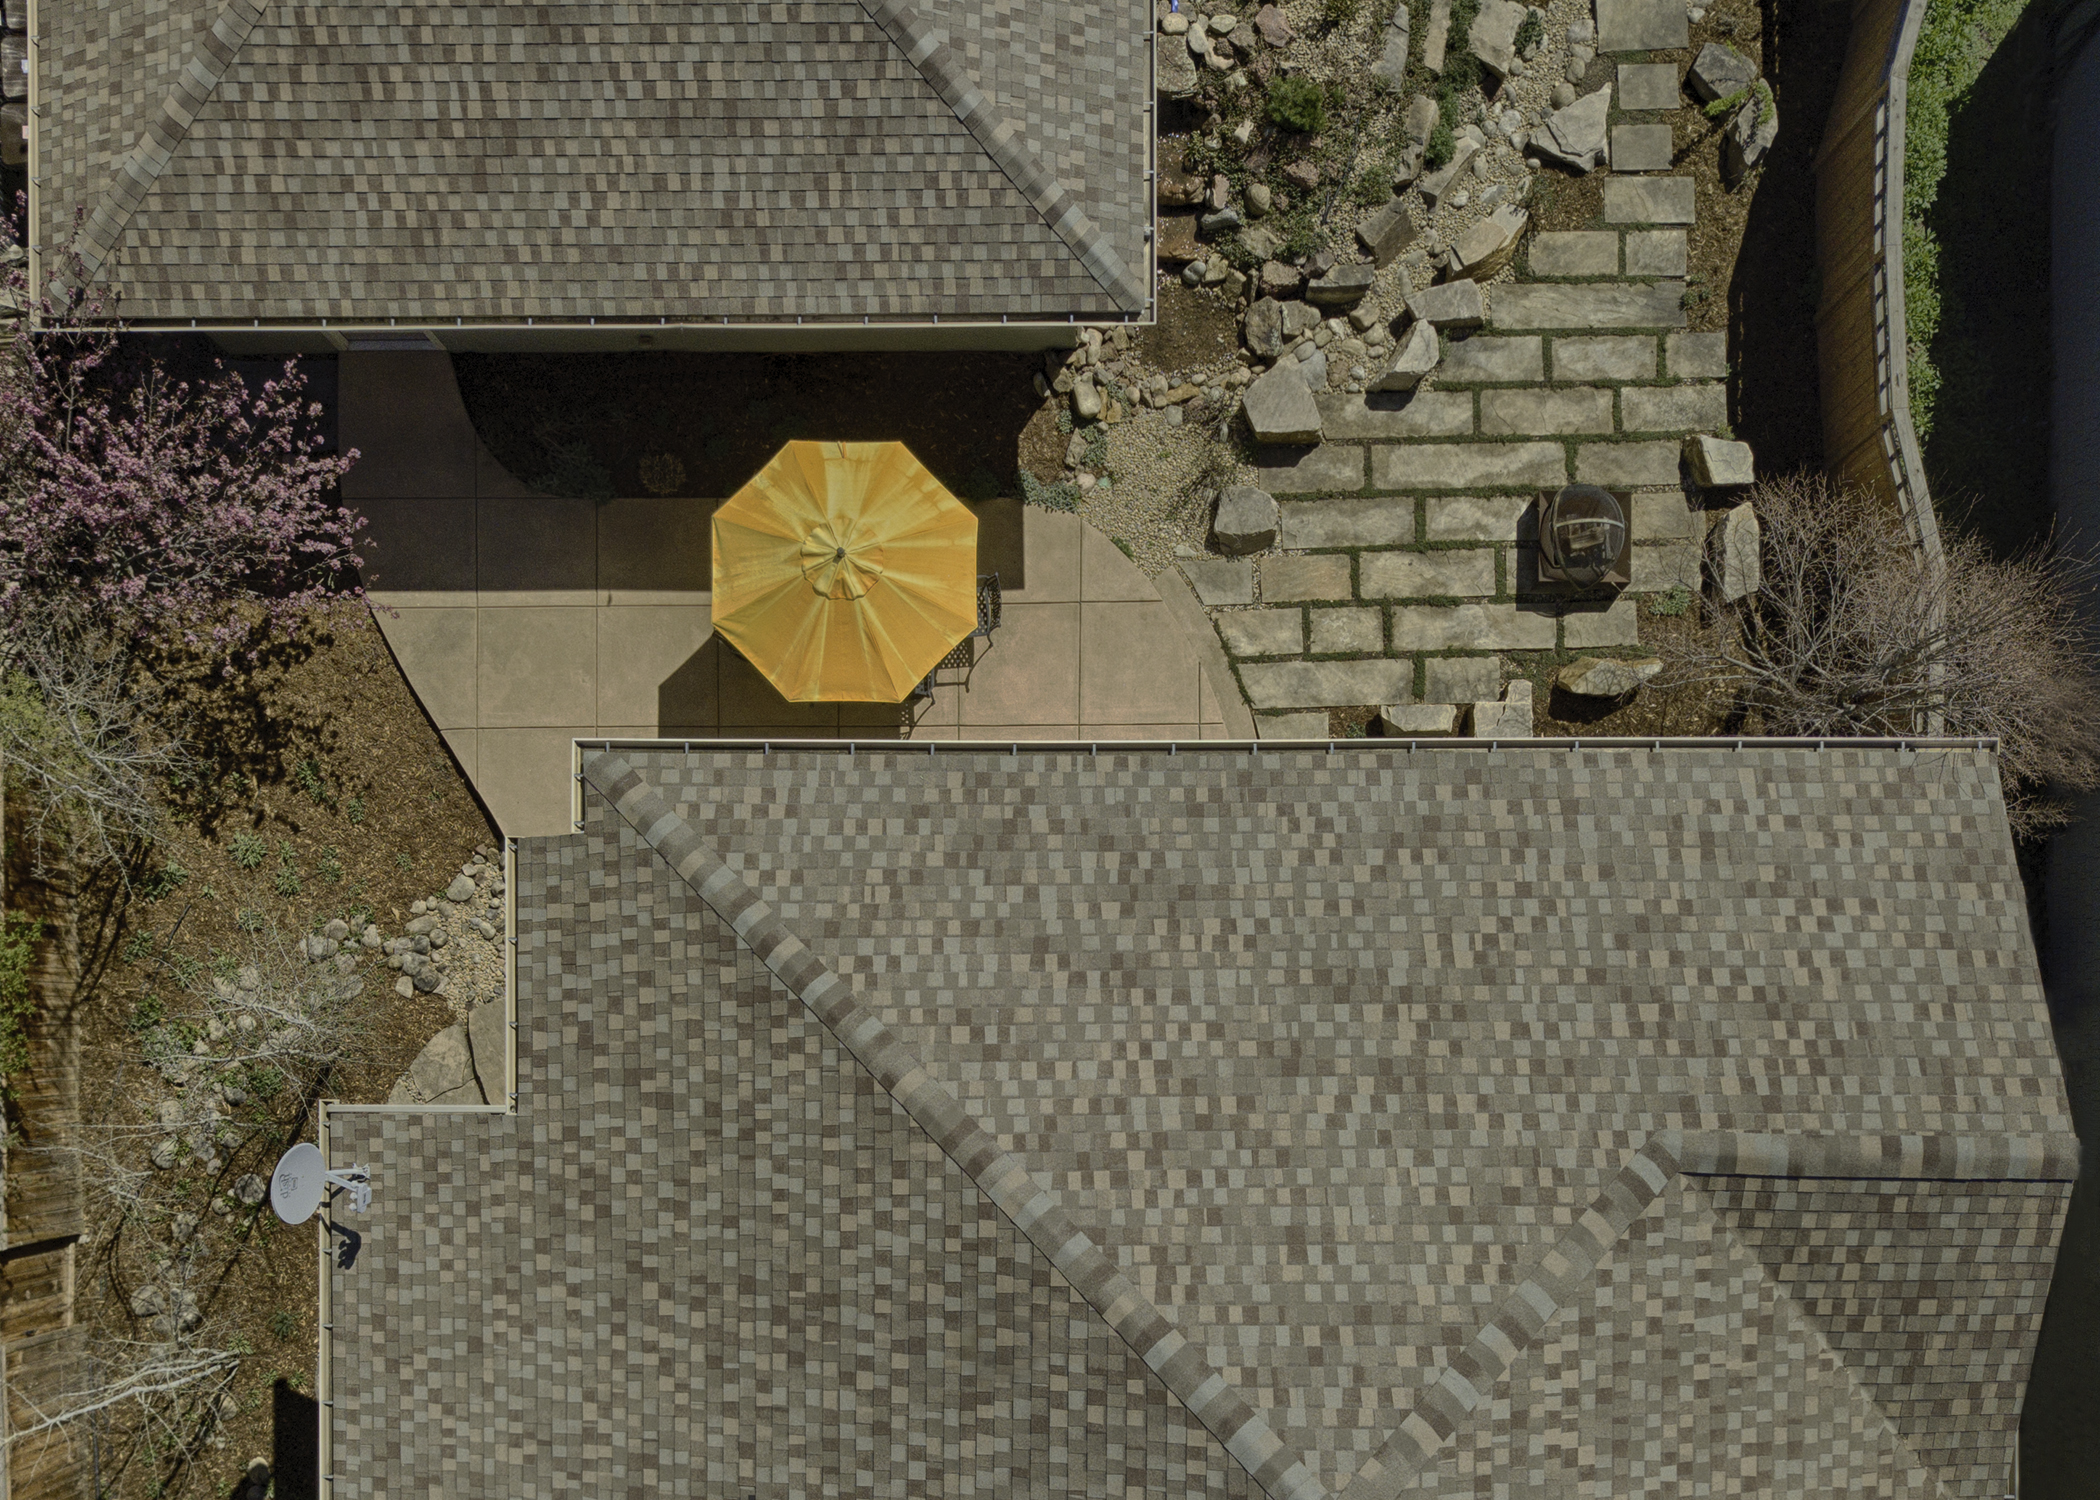 ©Robert D. Jones Photography Architectural Aerials Yellow Umbrella WP.jpg